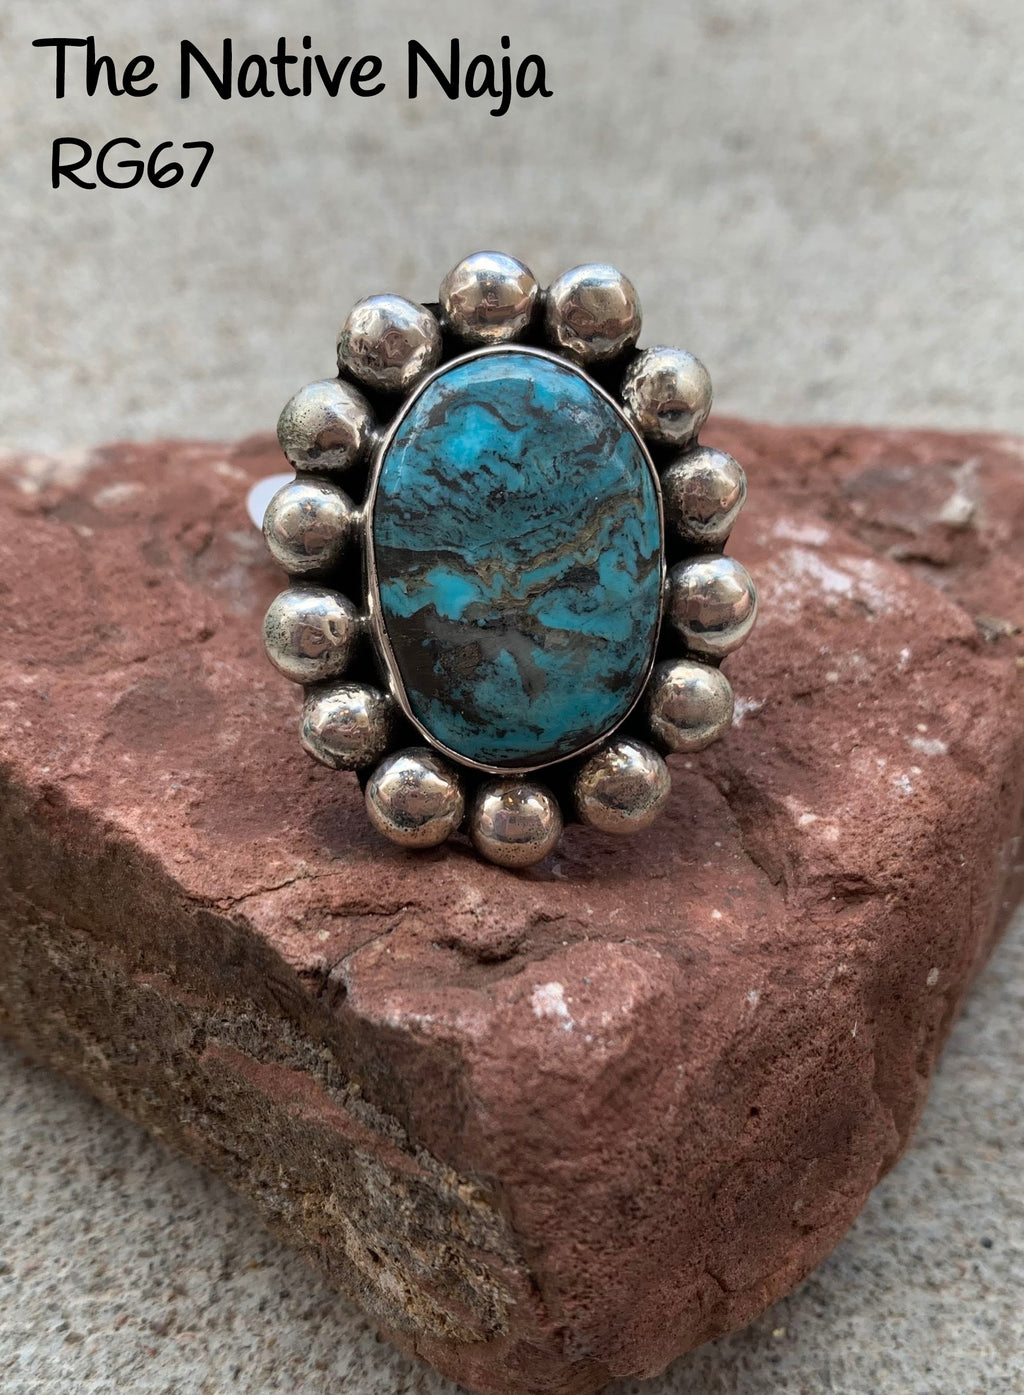 Navajo Genuine Sterling Silver & Kingman Turquoise Ring Size 6 1/2 RG67